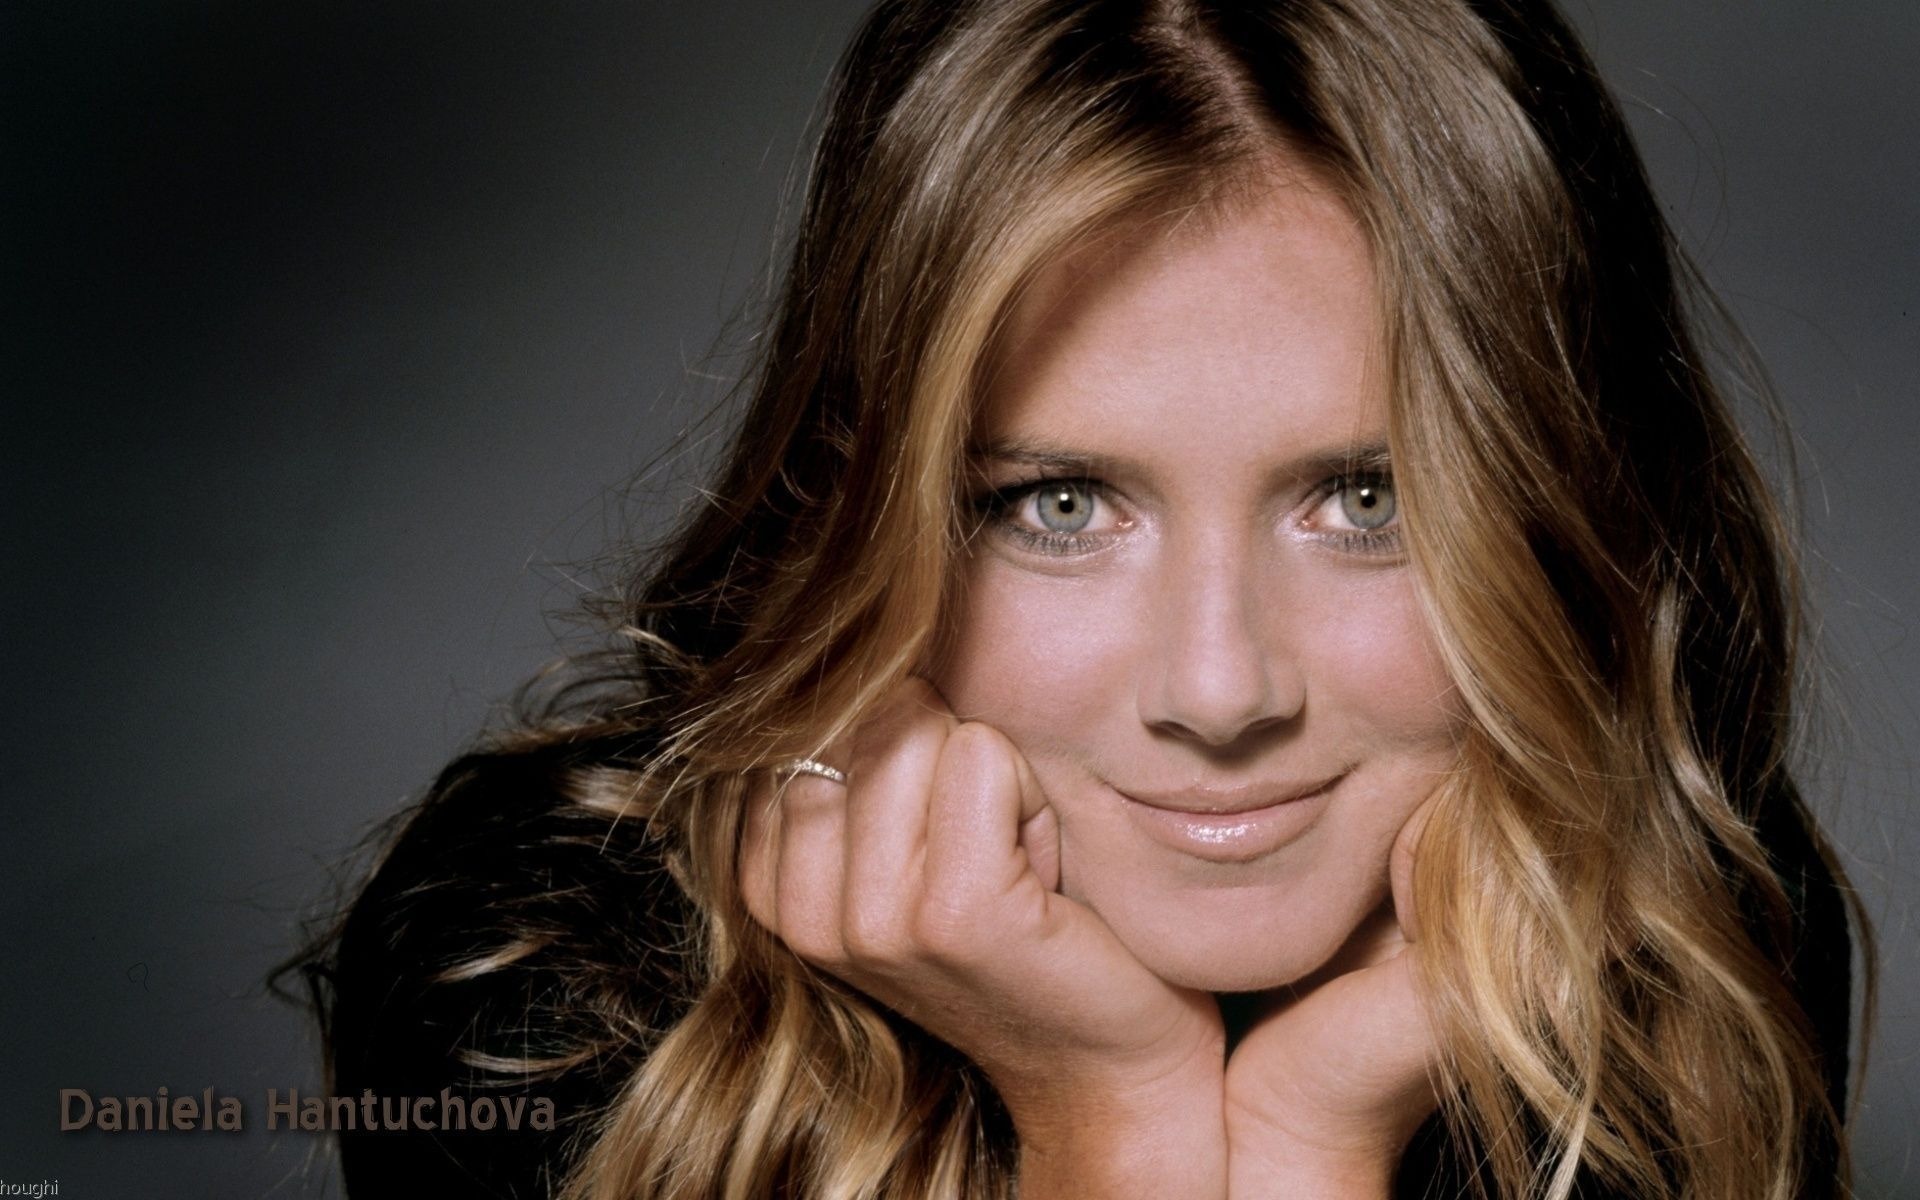 Daniela Hantuchova #009 - 1920x1200 Wallpapers Pictures Photos Images.